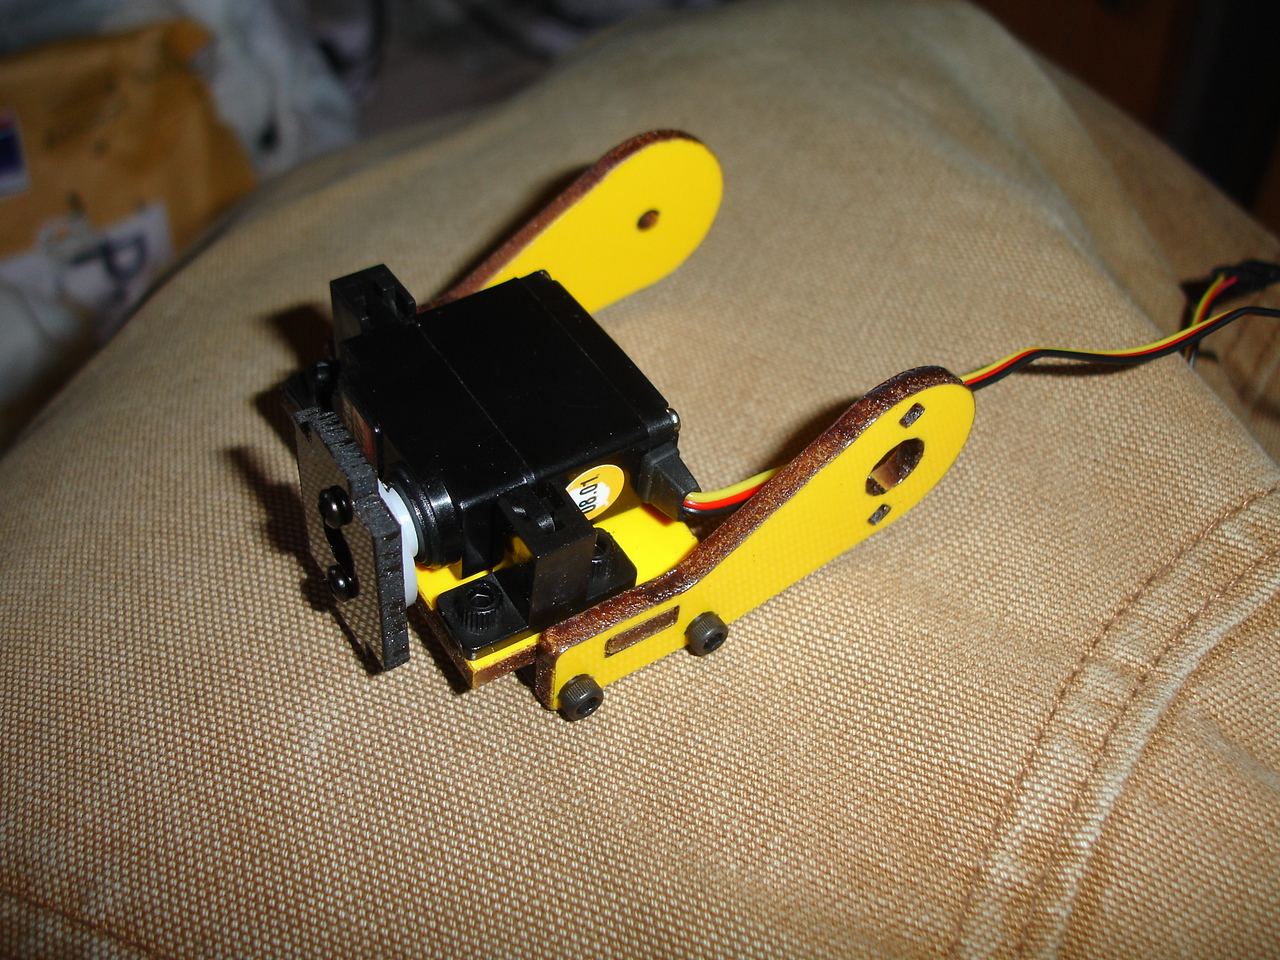 Wrist rotate servo mounted